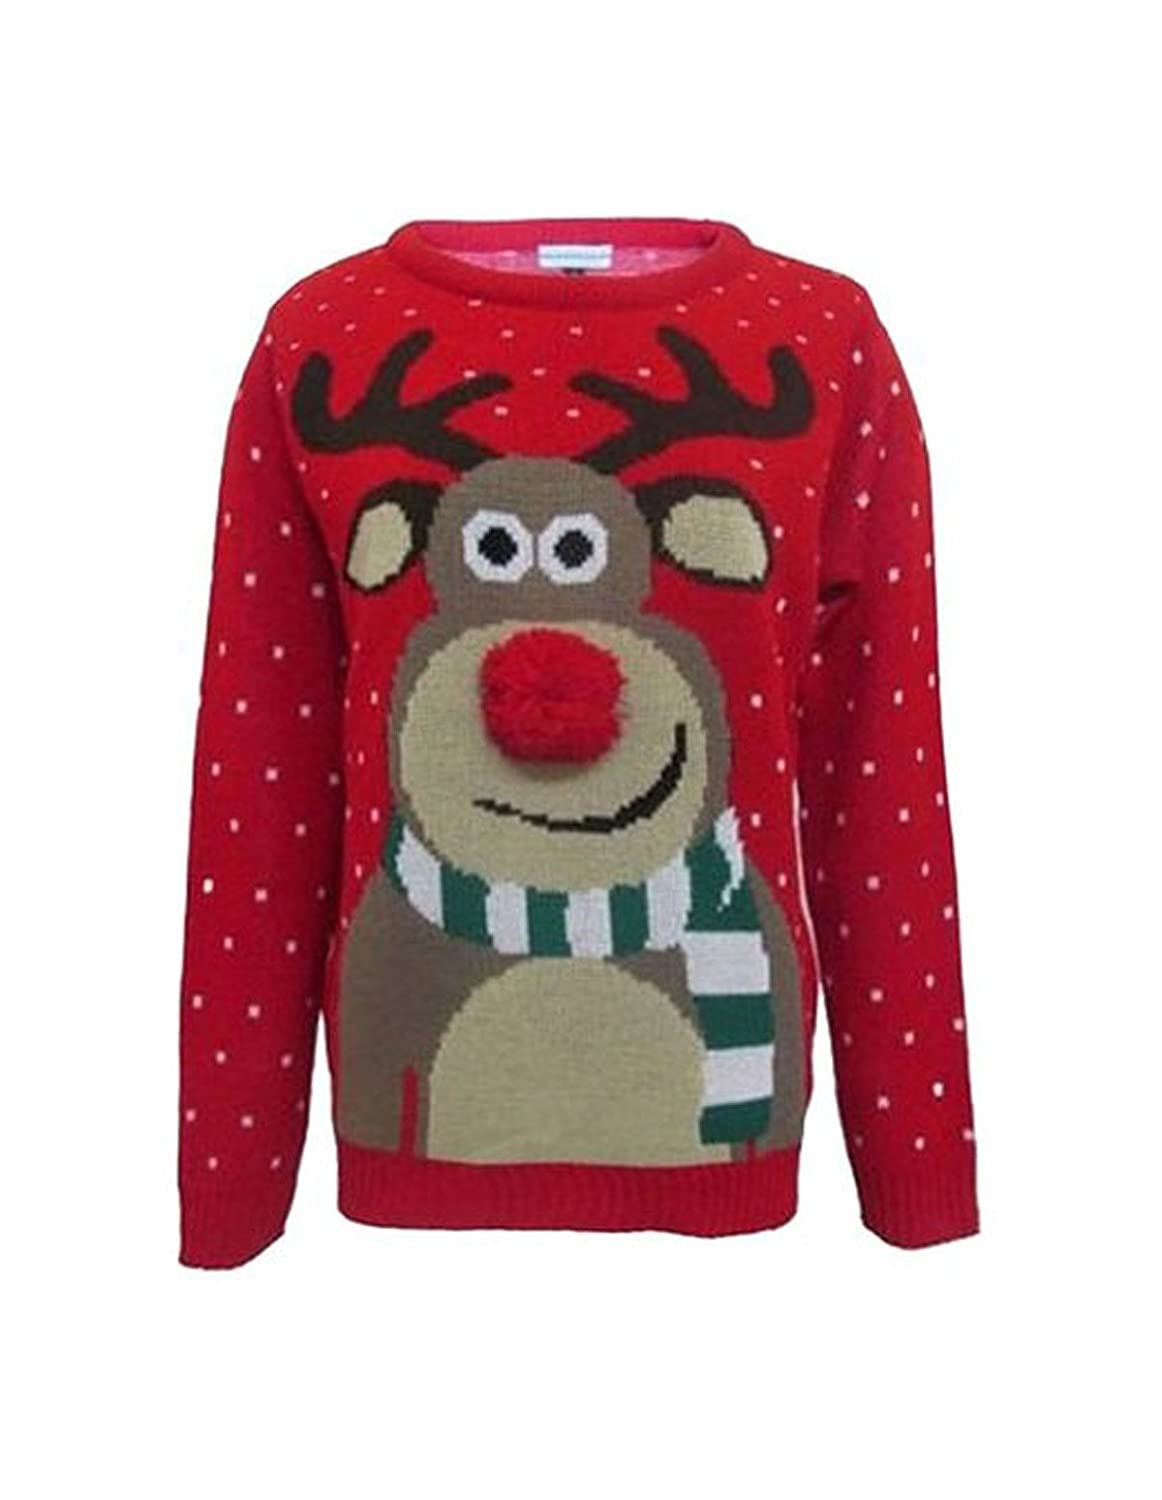 Girlzwalk Unisex Girls Boys Rudolph Knitted Pom Pom Xmas Jumper